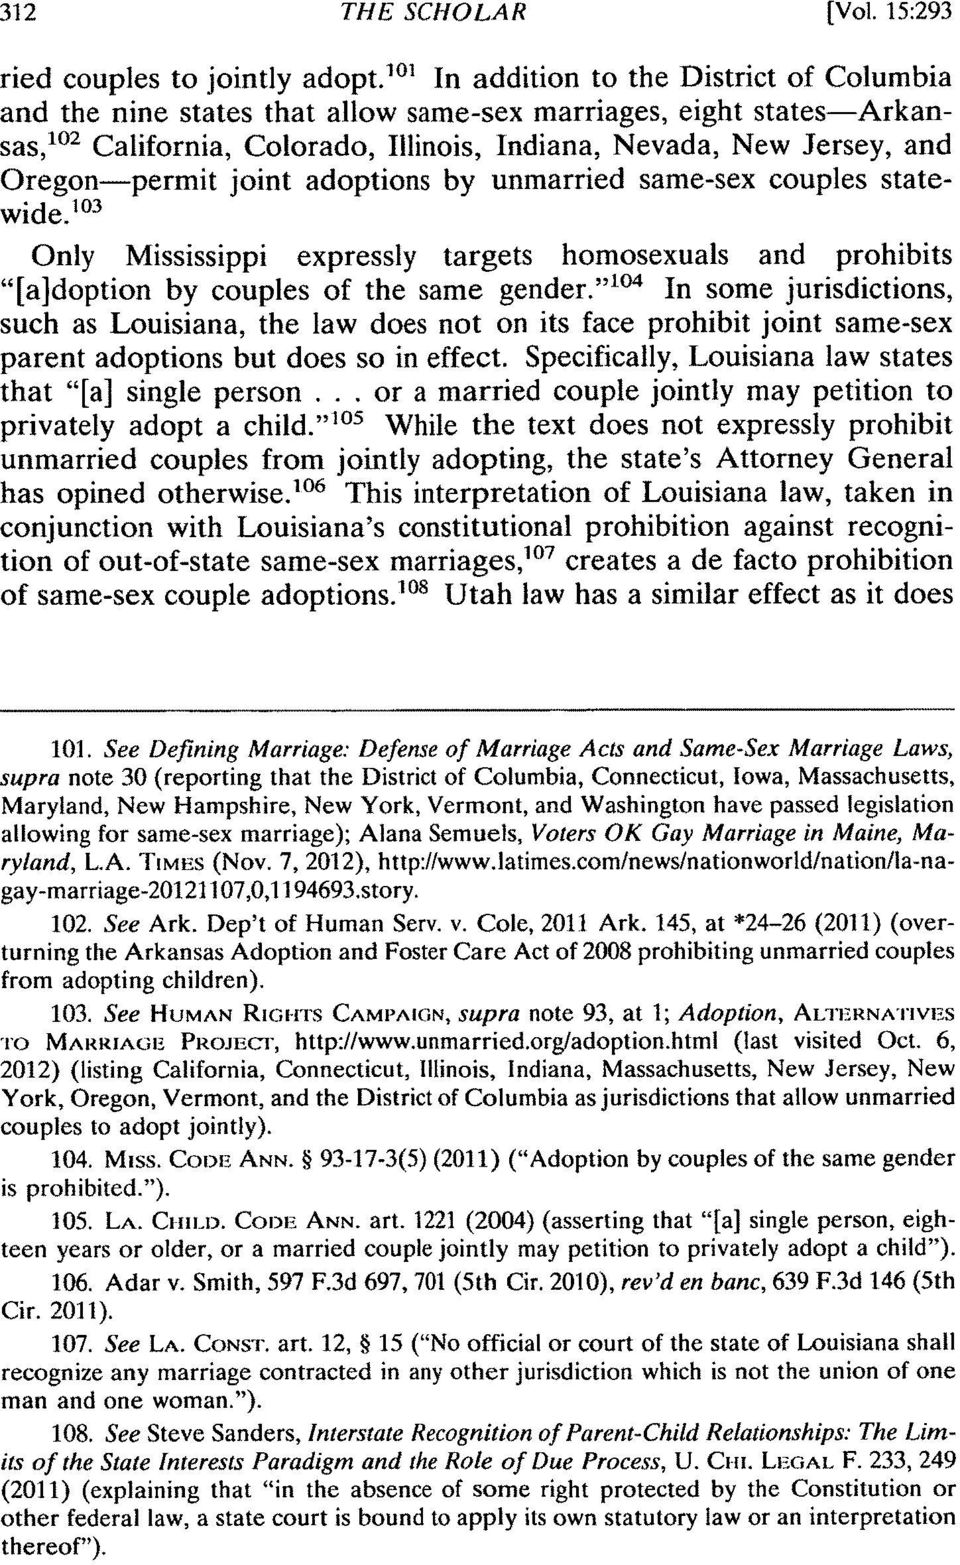 "joint adoptions by unmarried same-sex couples statewide. 03 Only Mississippi expressly targets homosexuals and prohibits ""[a]doption by couples of the same gender."